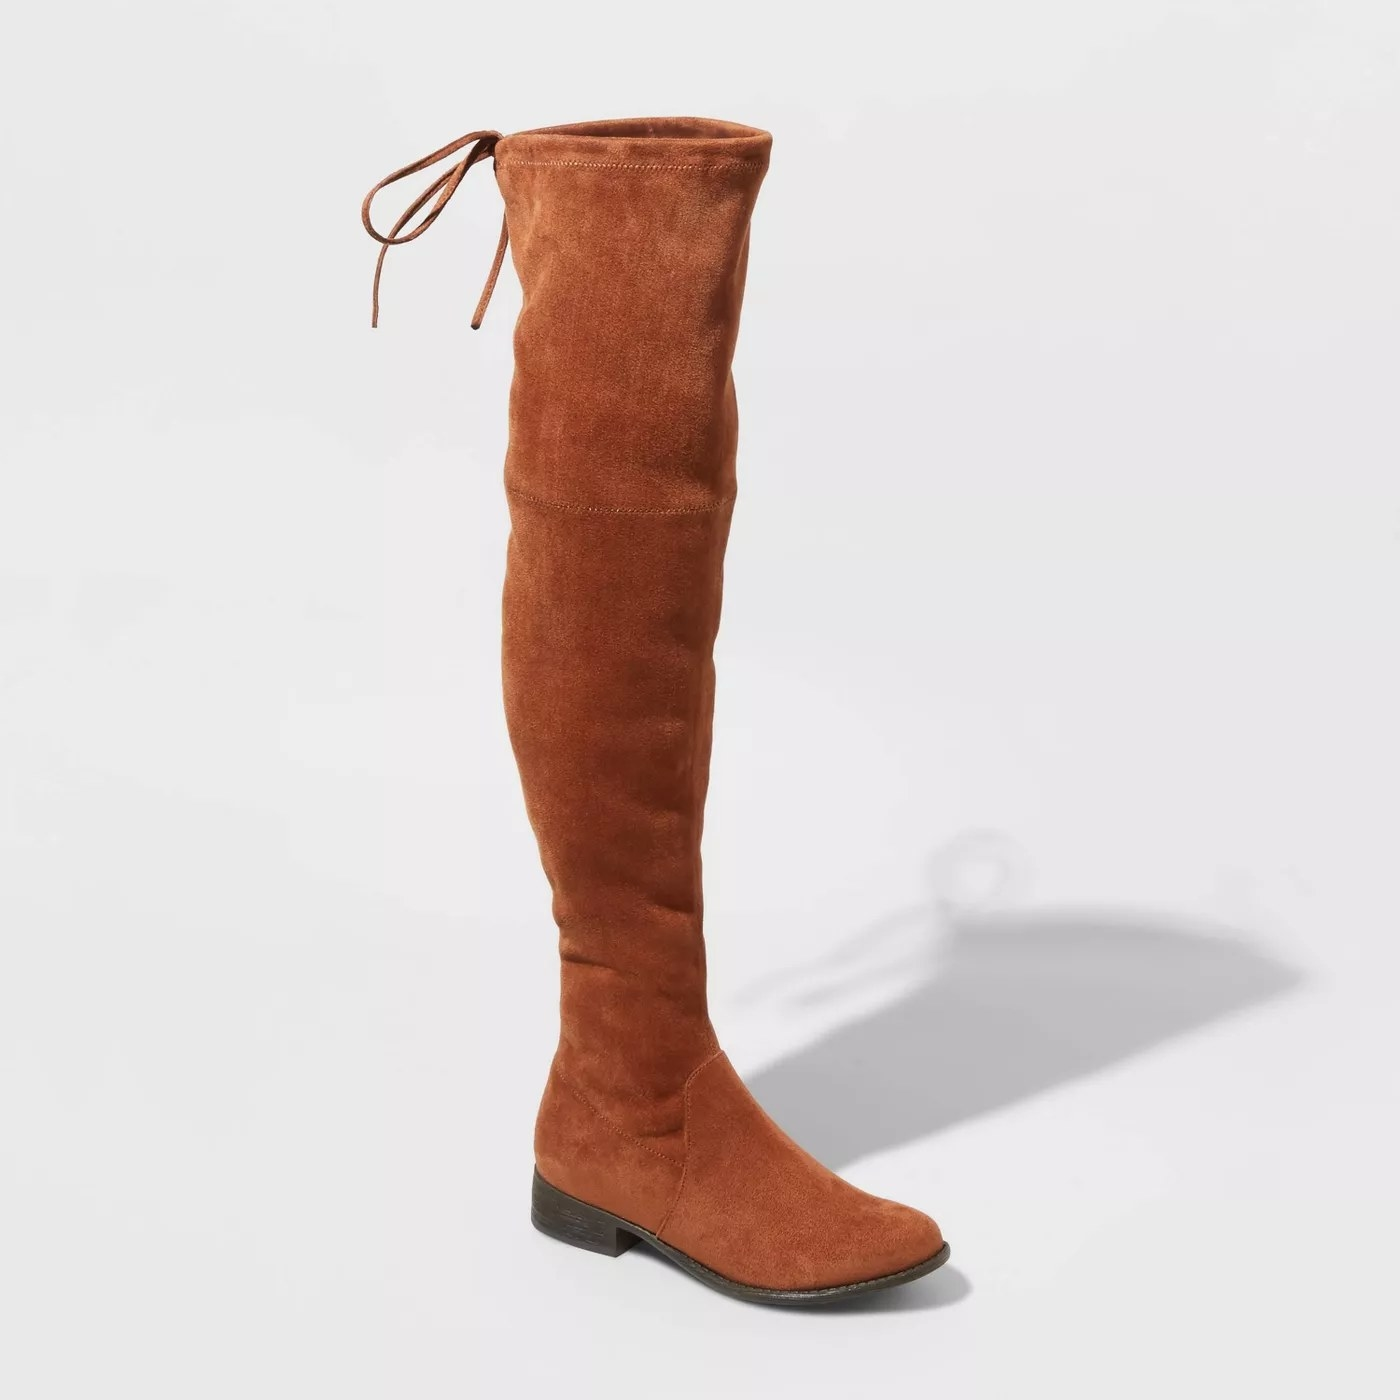 Dark camel colored knee high boots with black sole.